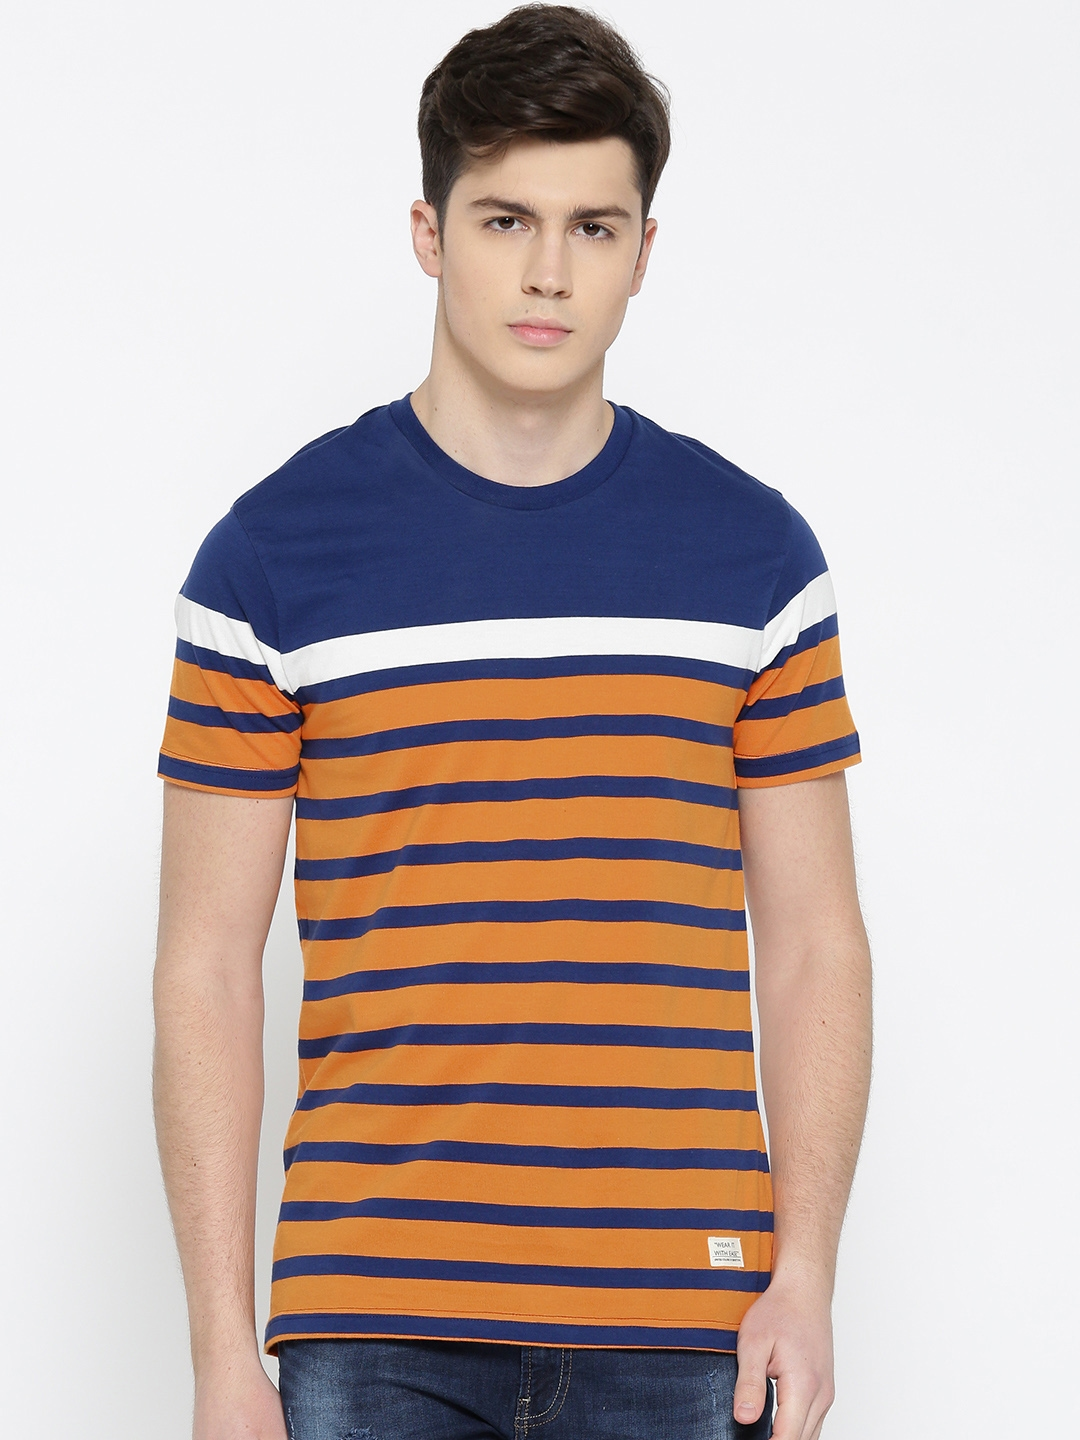 1a7db824a2 United Colors of Benetton Men Navy Blue & Orange Striped Round Neck T-shirt